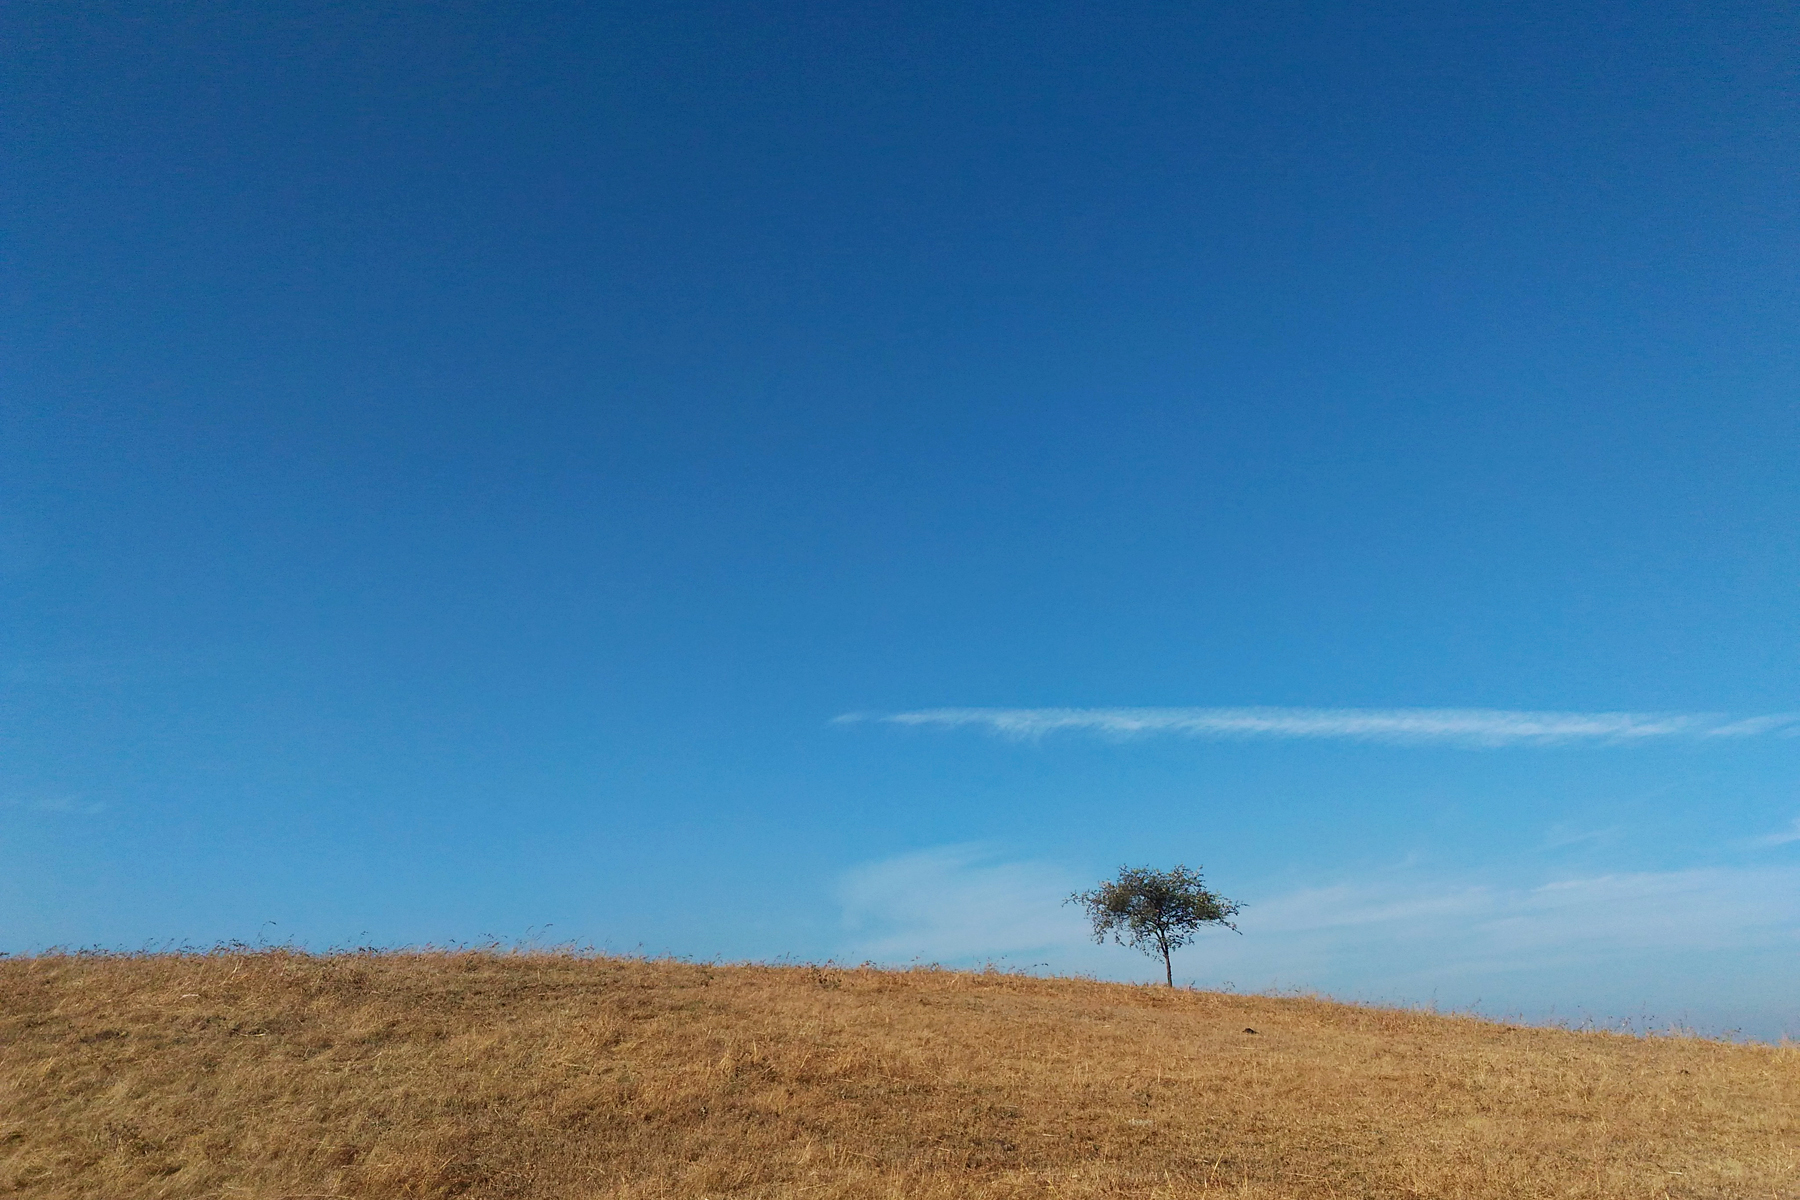 A lone tree along with the kshitij. Taken from mobile phone.